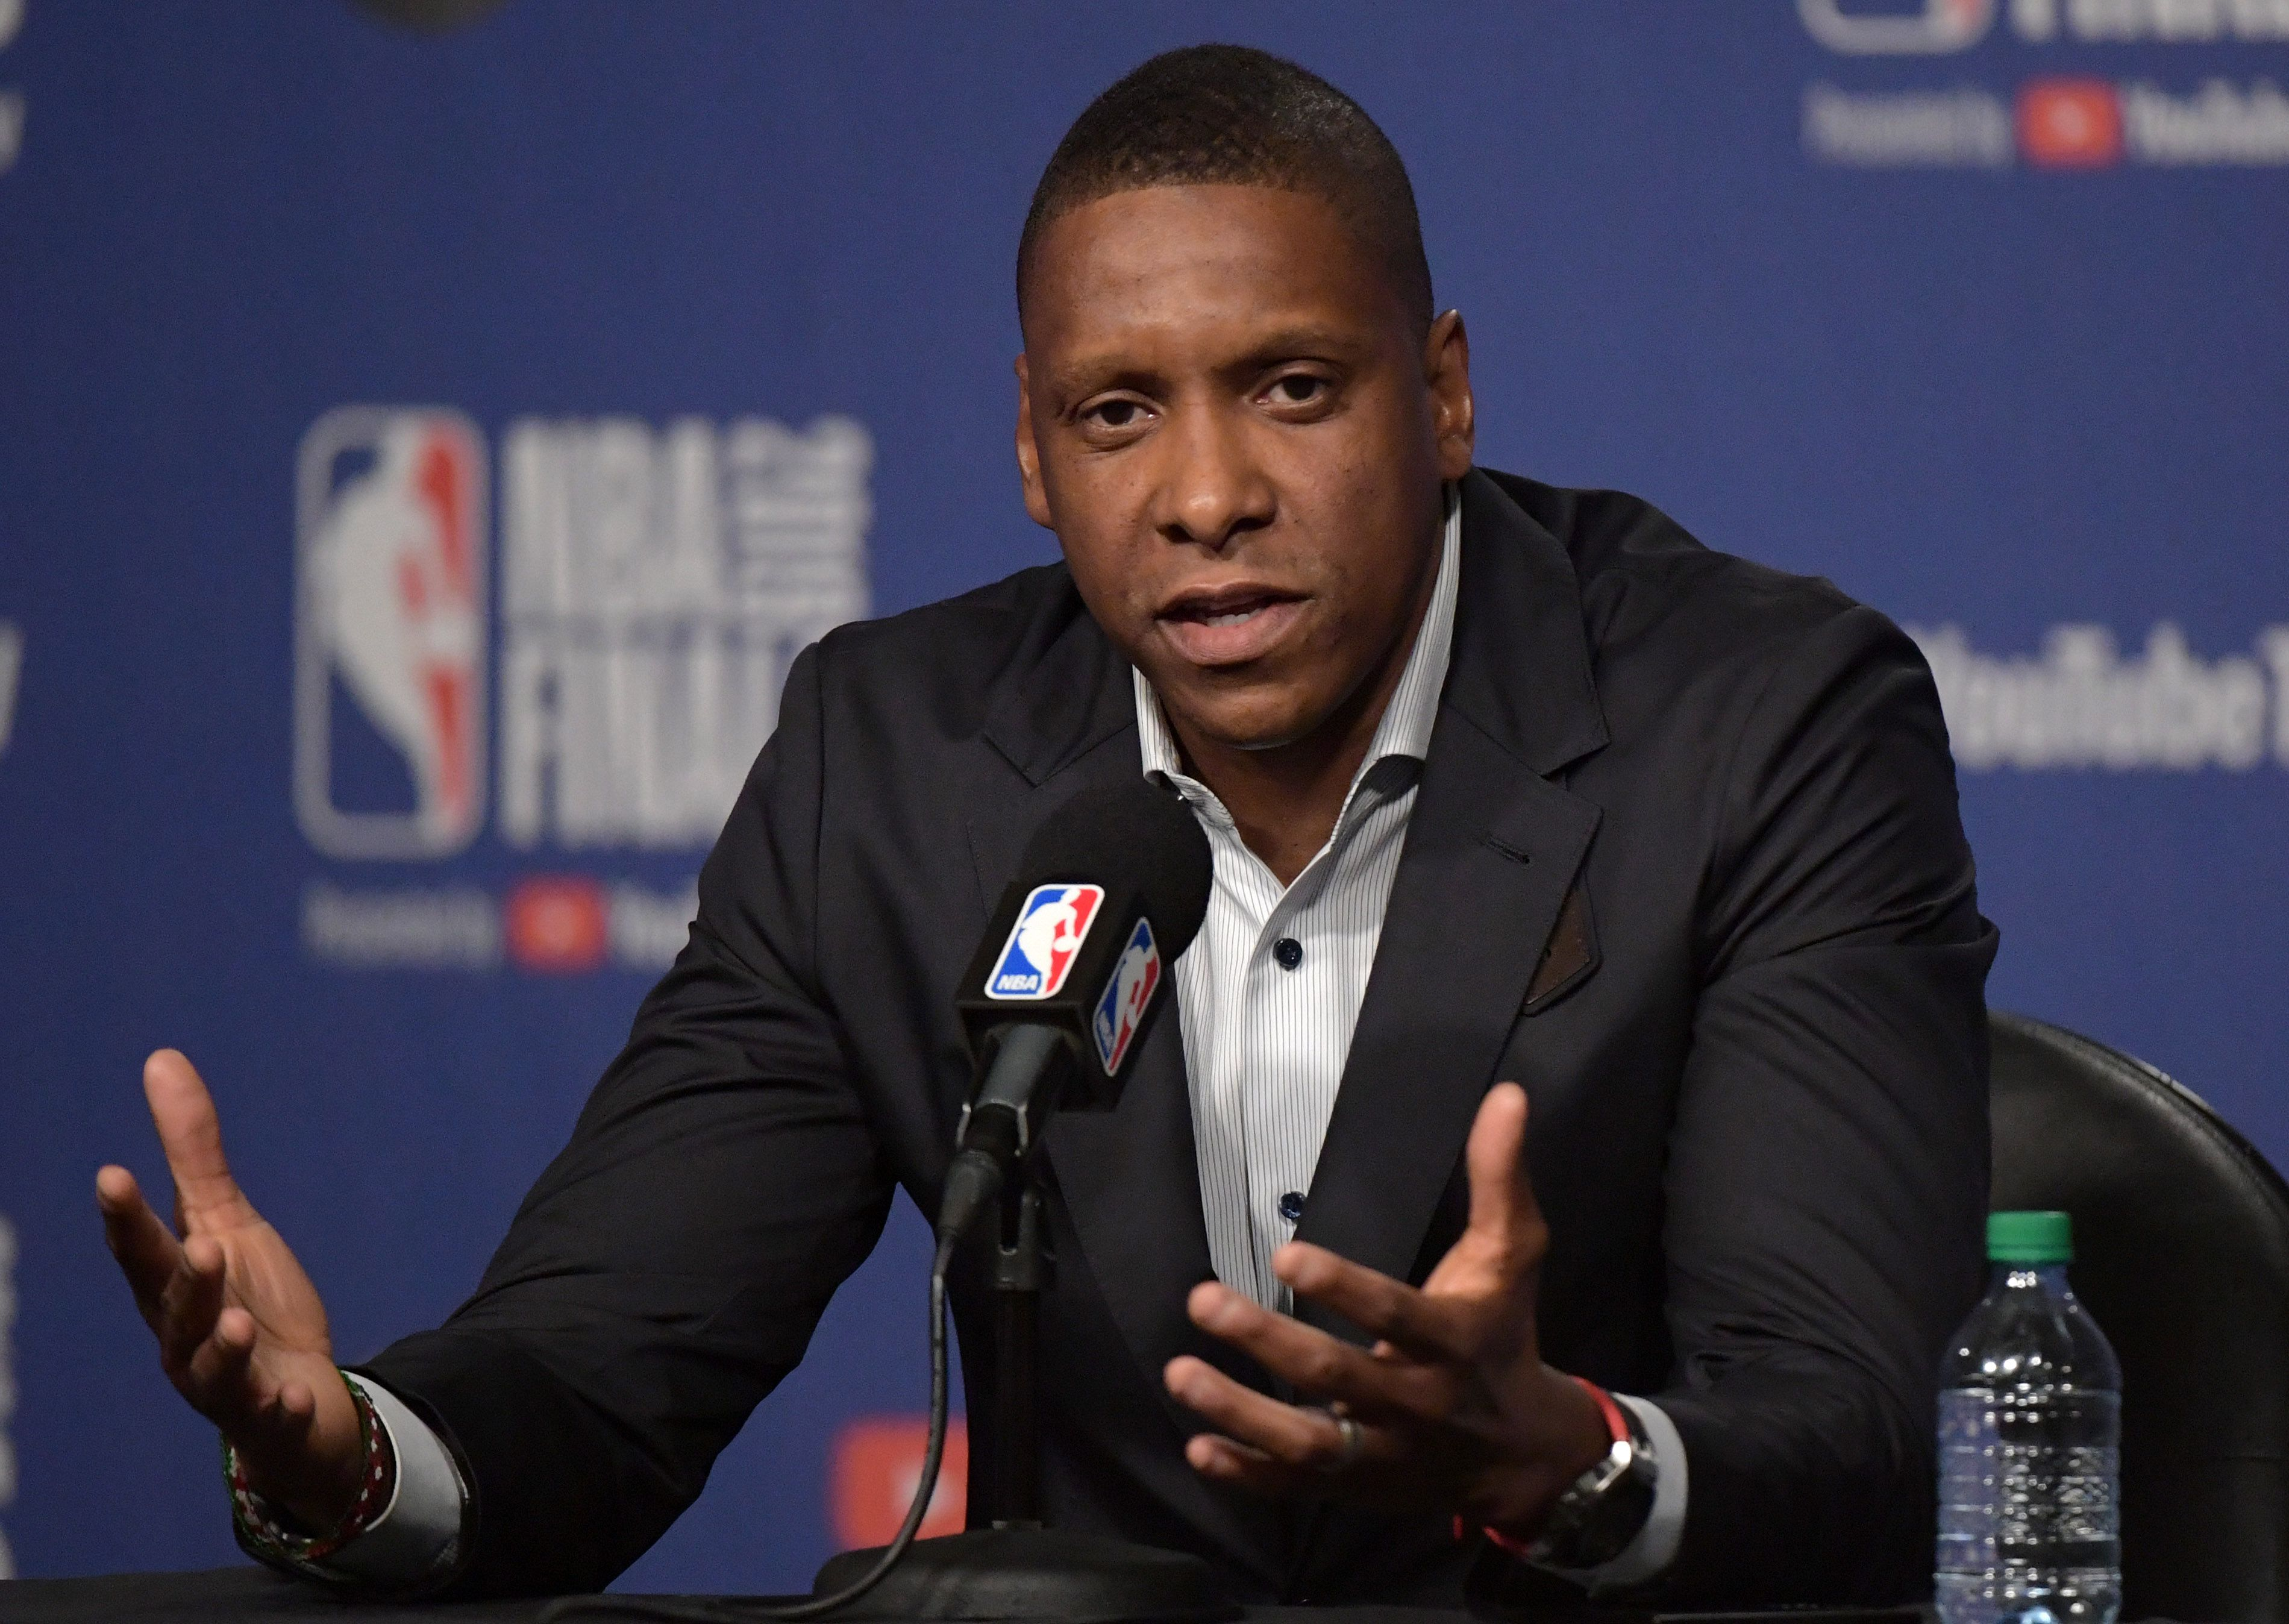 Oakland police pass Ujiri case to District Attorney's office, which will decide if charge will be laid